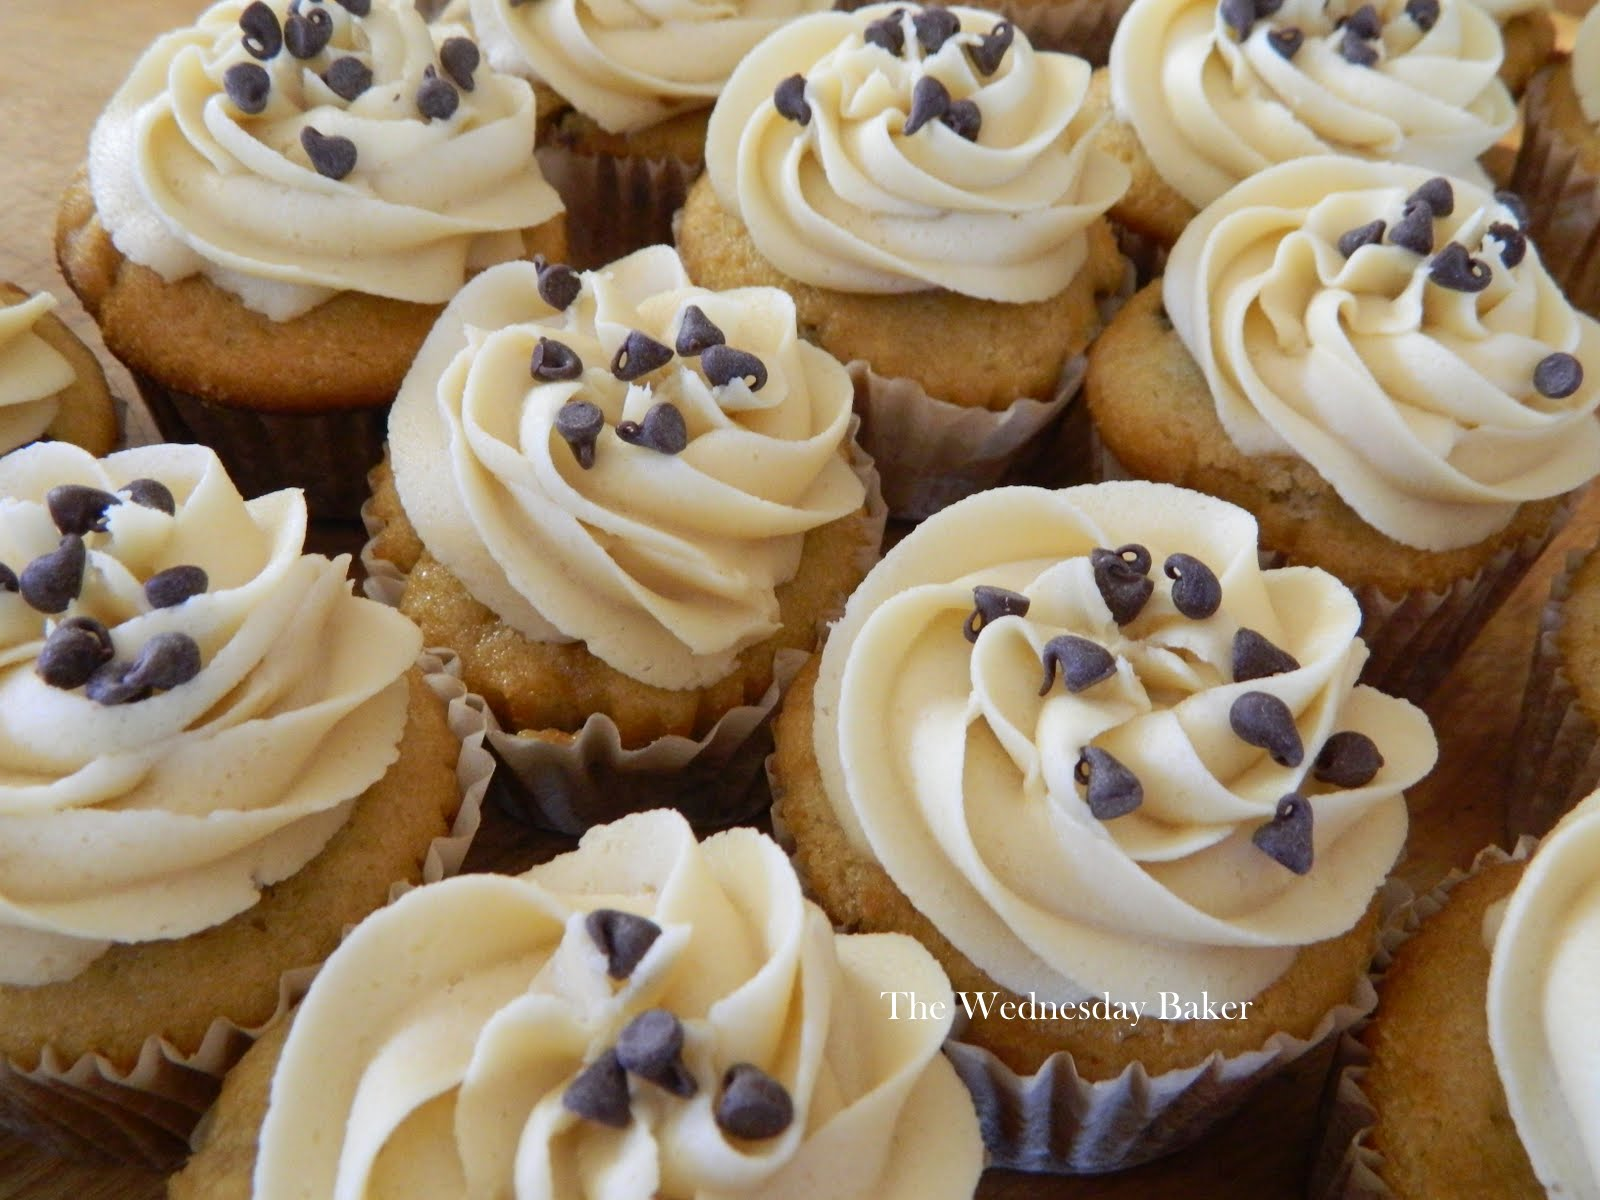 The Wednesday Baker: CHOCOLATE CHIP COOKIE DOUGH CUPCAKES